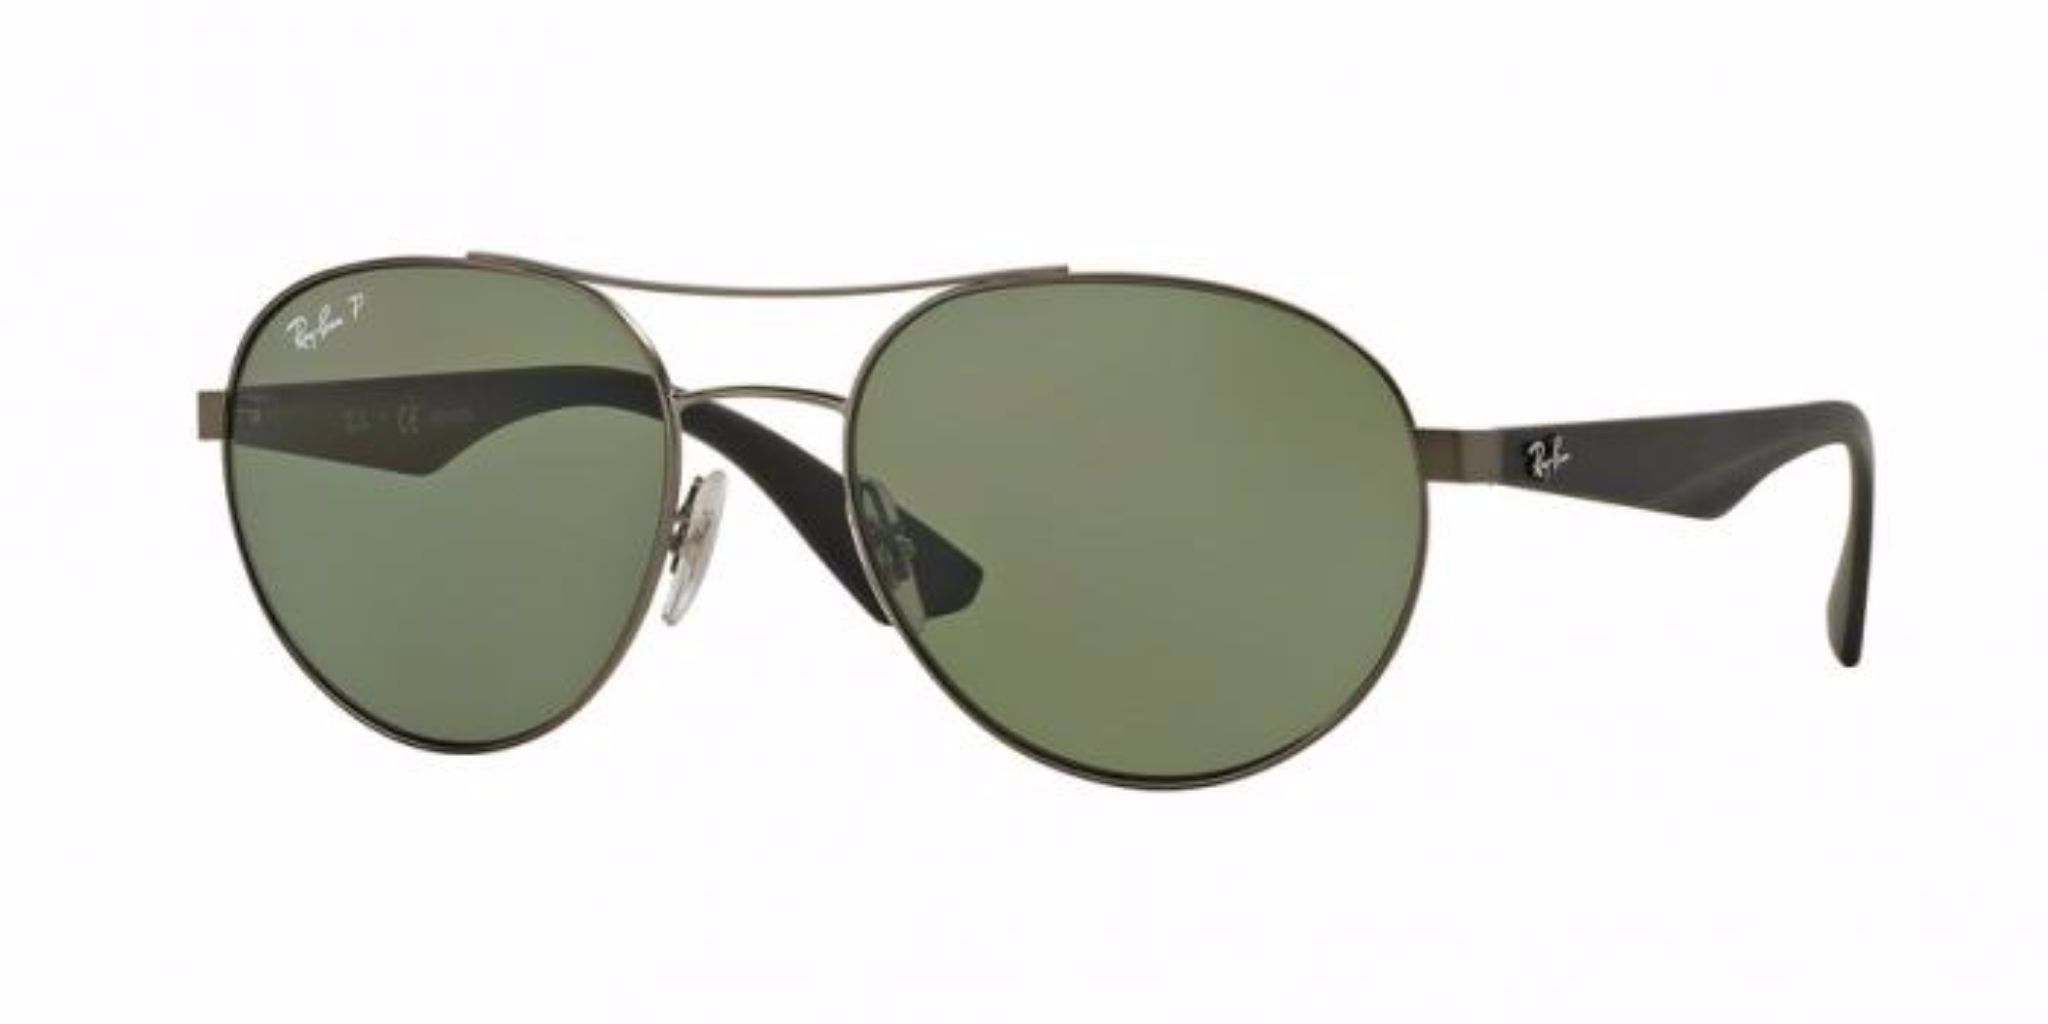 Ray-Ban RB3536 Sunglasses | Products | Pinterest